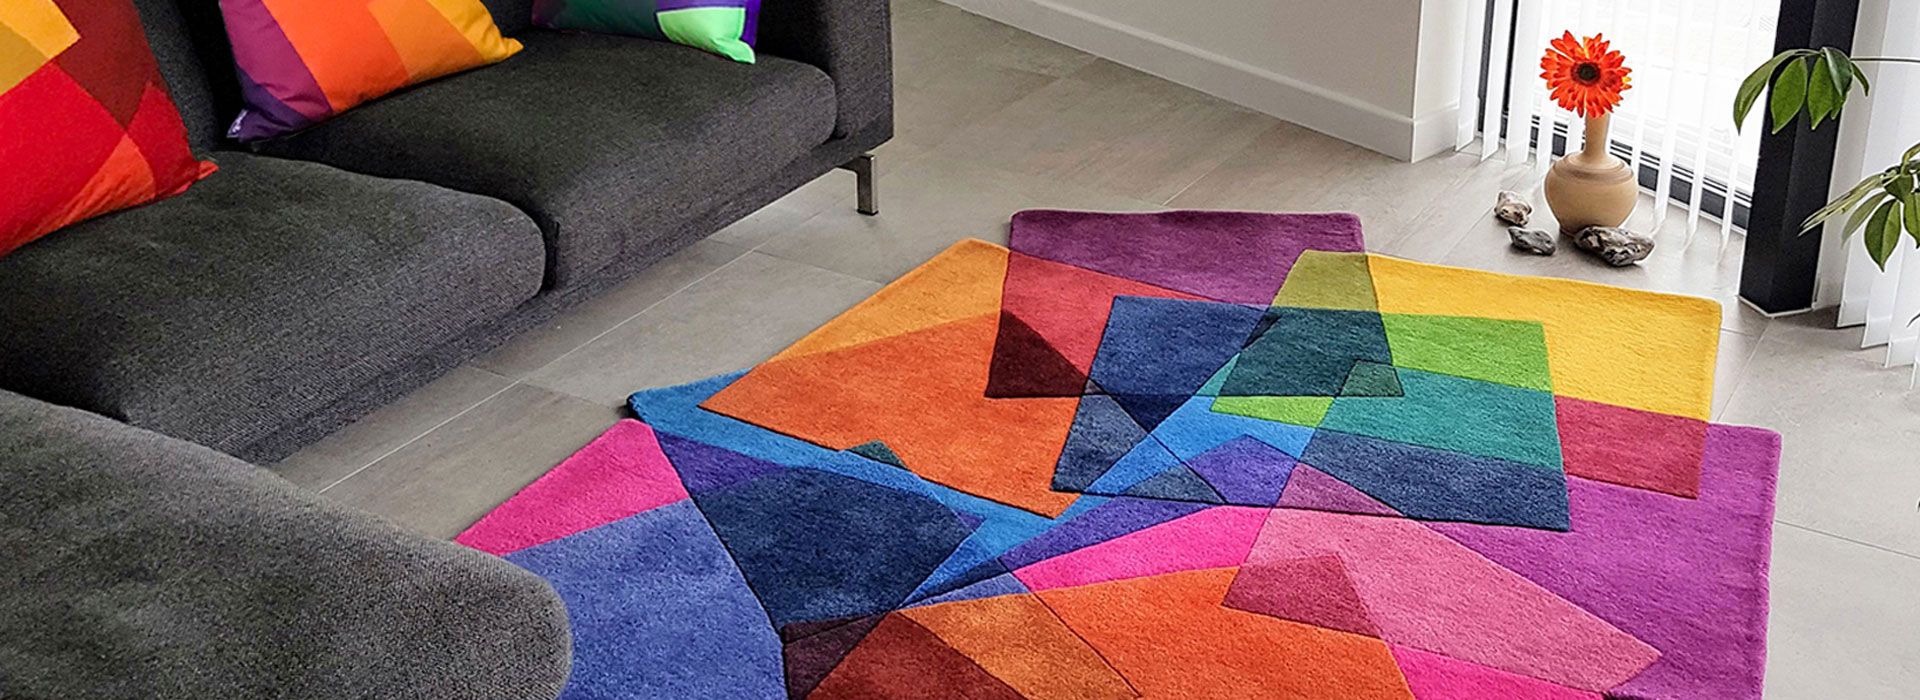 How to Care and Clean Your Rug